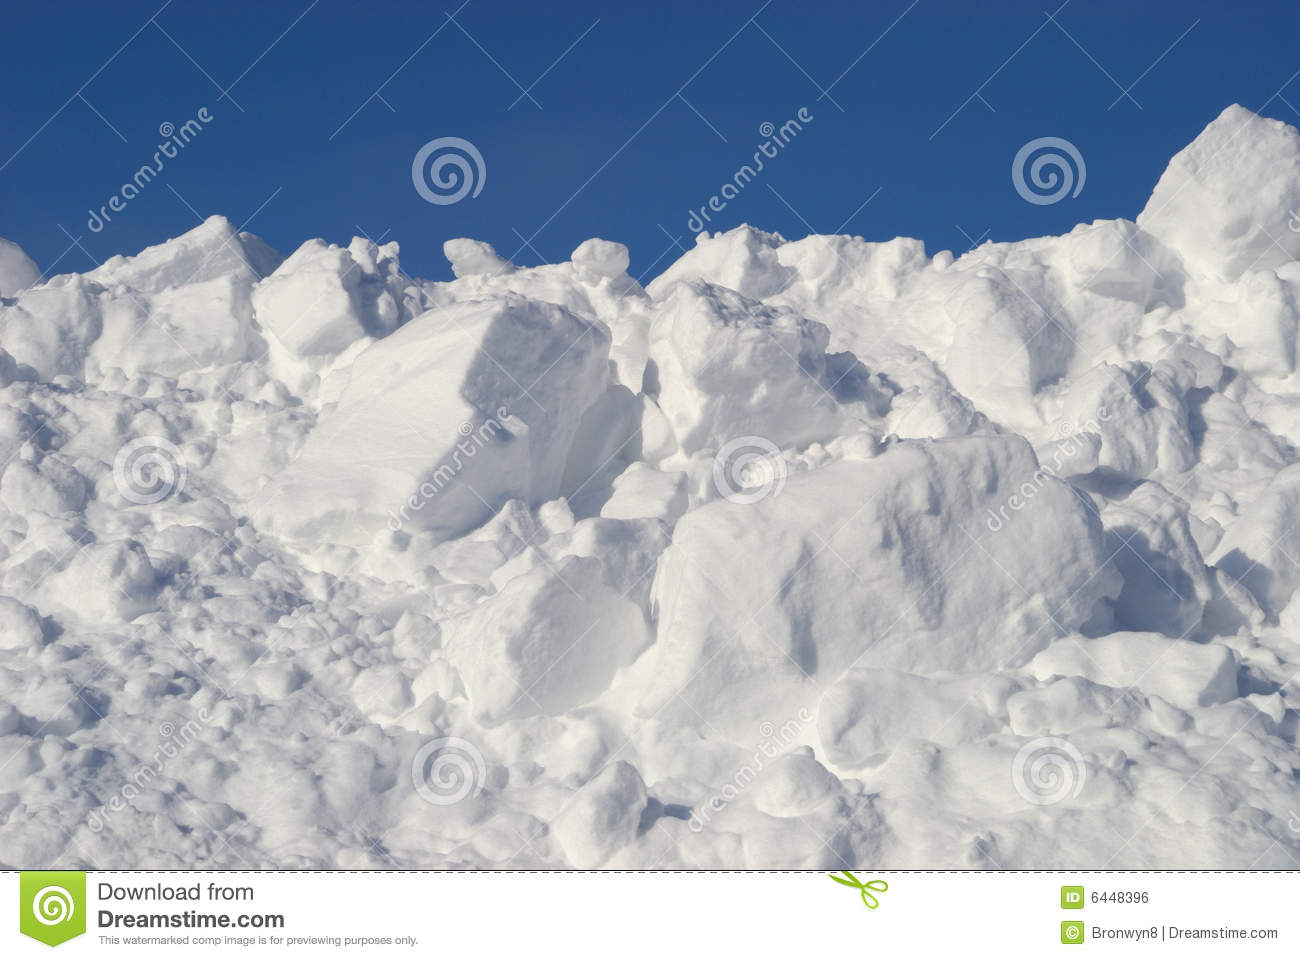 Snow Pile Royalty Free Stock Image - Image: 6448396